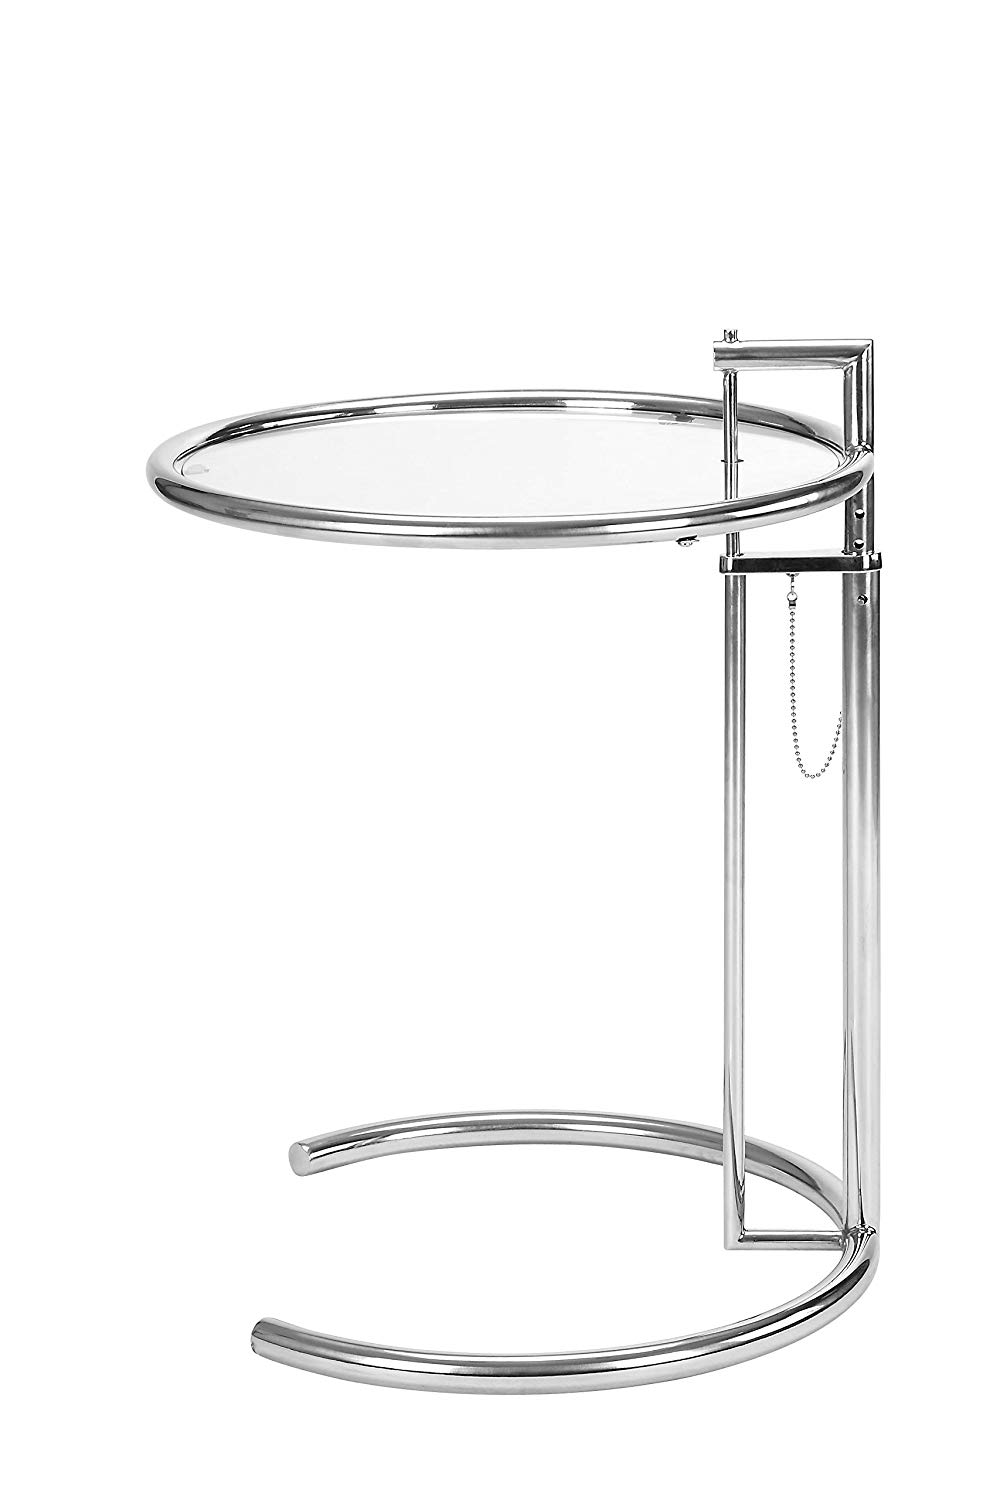 eileen grey gray end side table adjustable height accent coffee with tempered circle glass top and stainless steel tublar frame modern wrought iron foot long sofa mini lamp silver